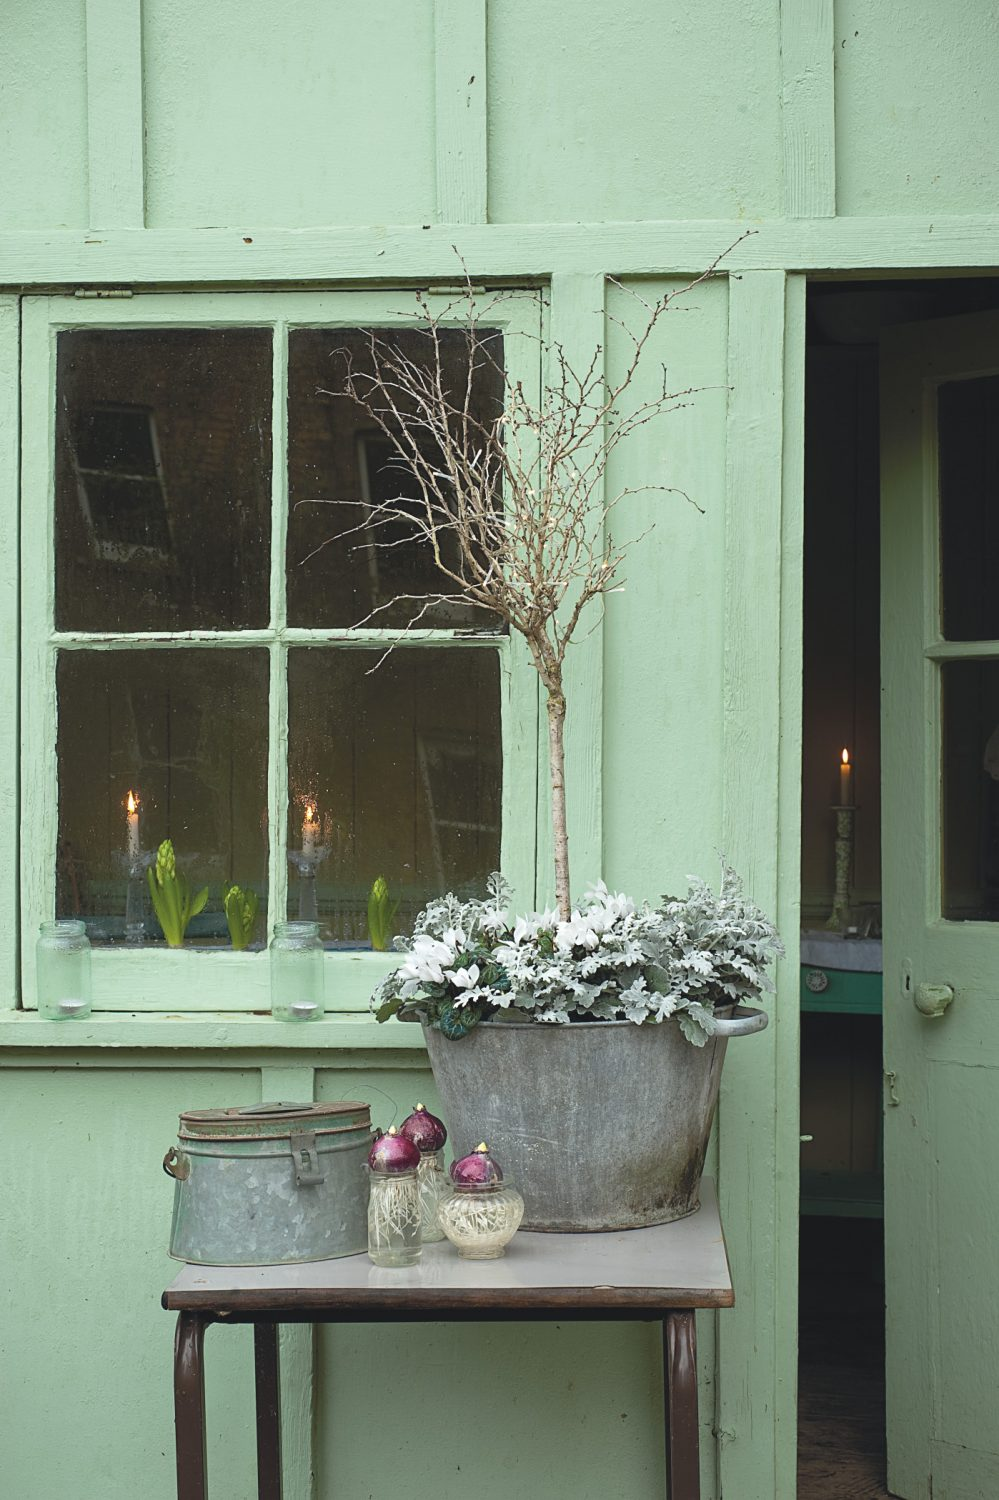 This sweet little prunus tree with bare twiggy branches looks cute on its own, but underplanting it with senecio and cyclamen transforms it into a garden feature